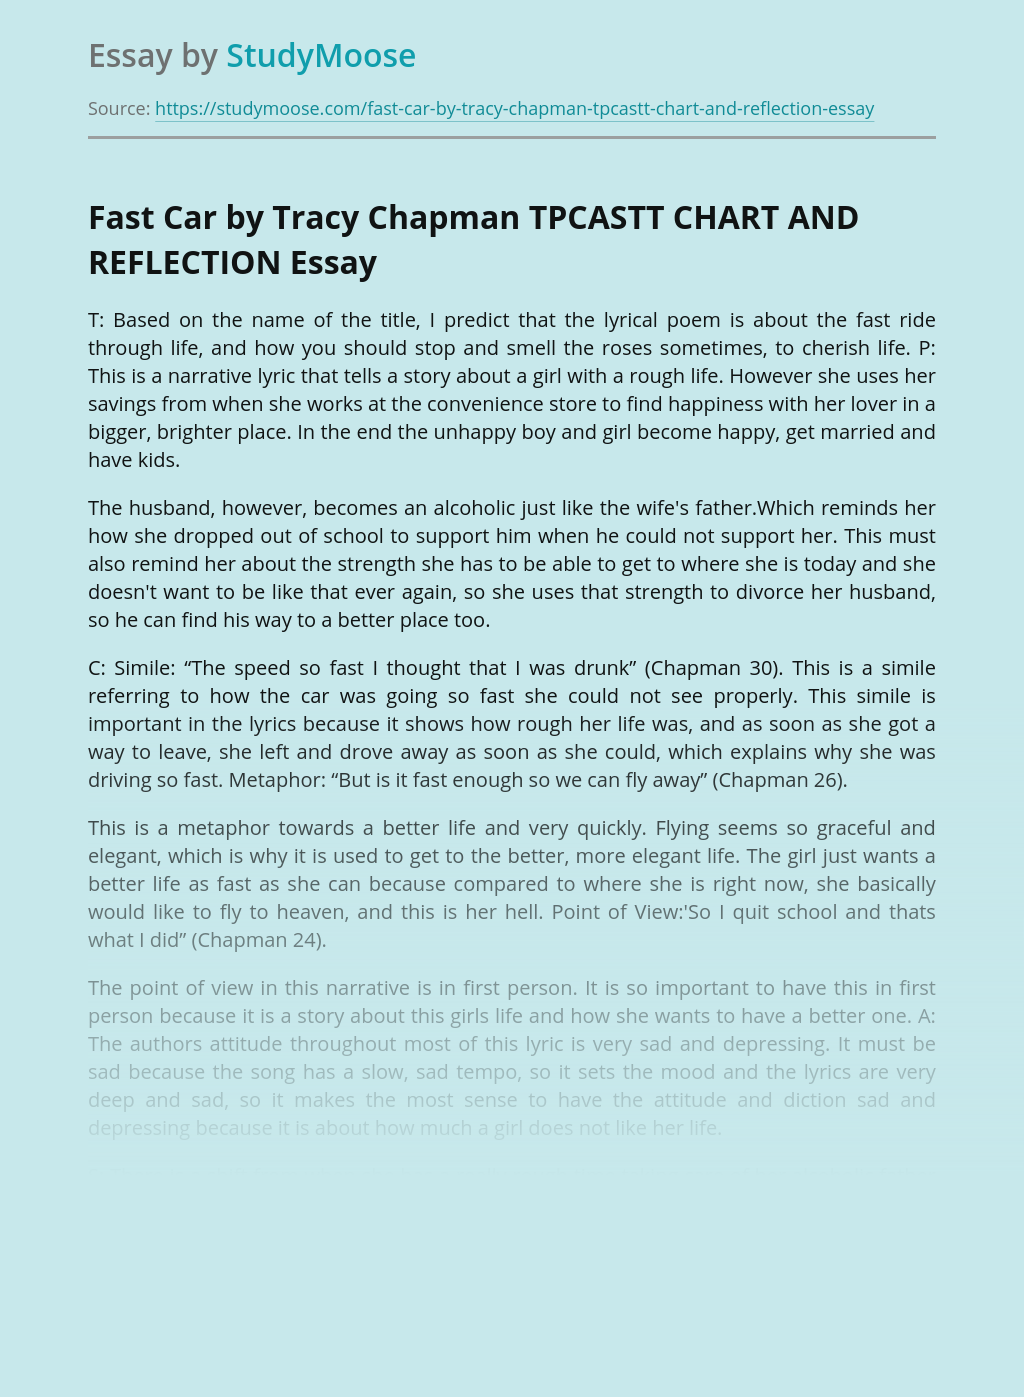 Fast Car by Tracy Chapman TPCASTT CHART AND REFLECTION